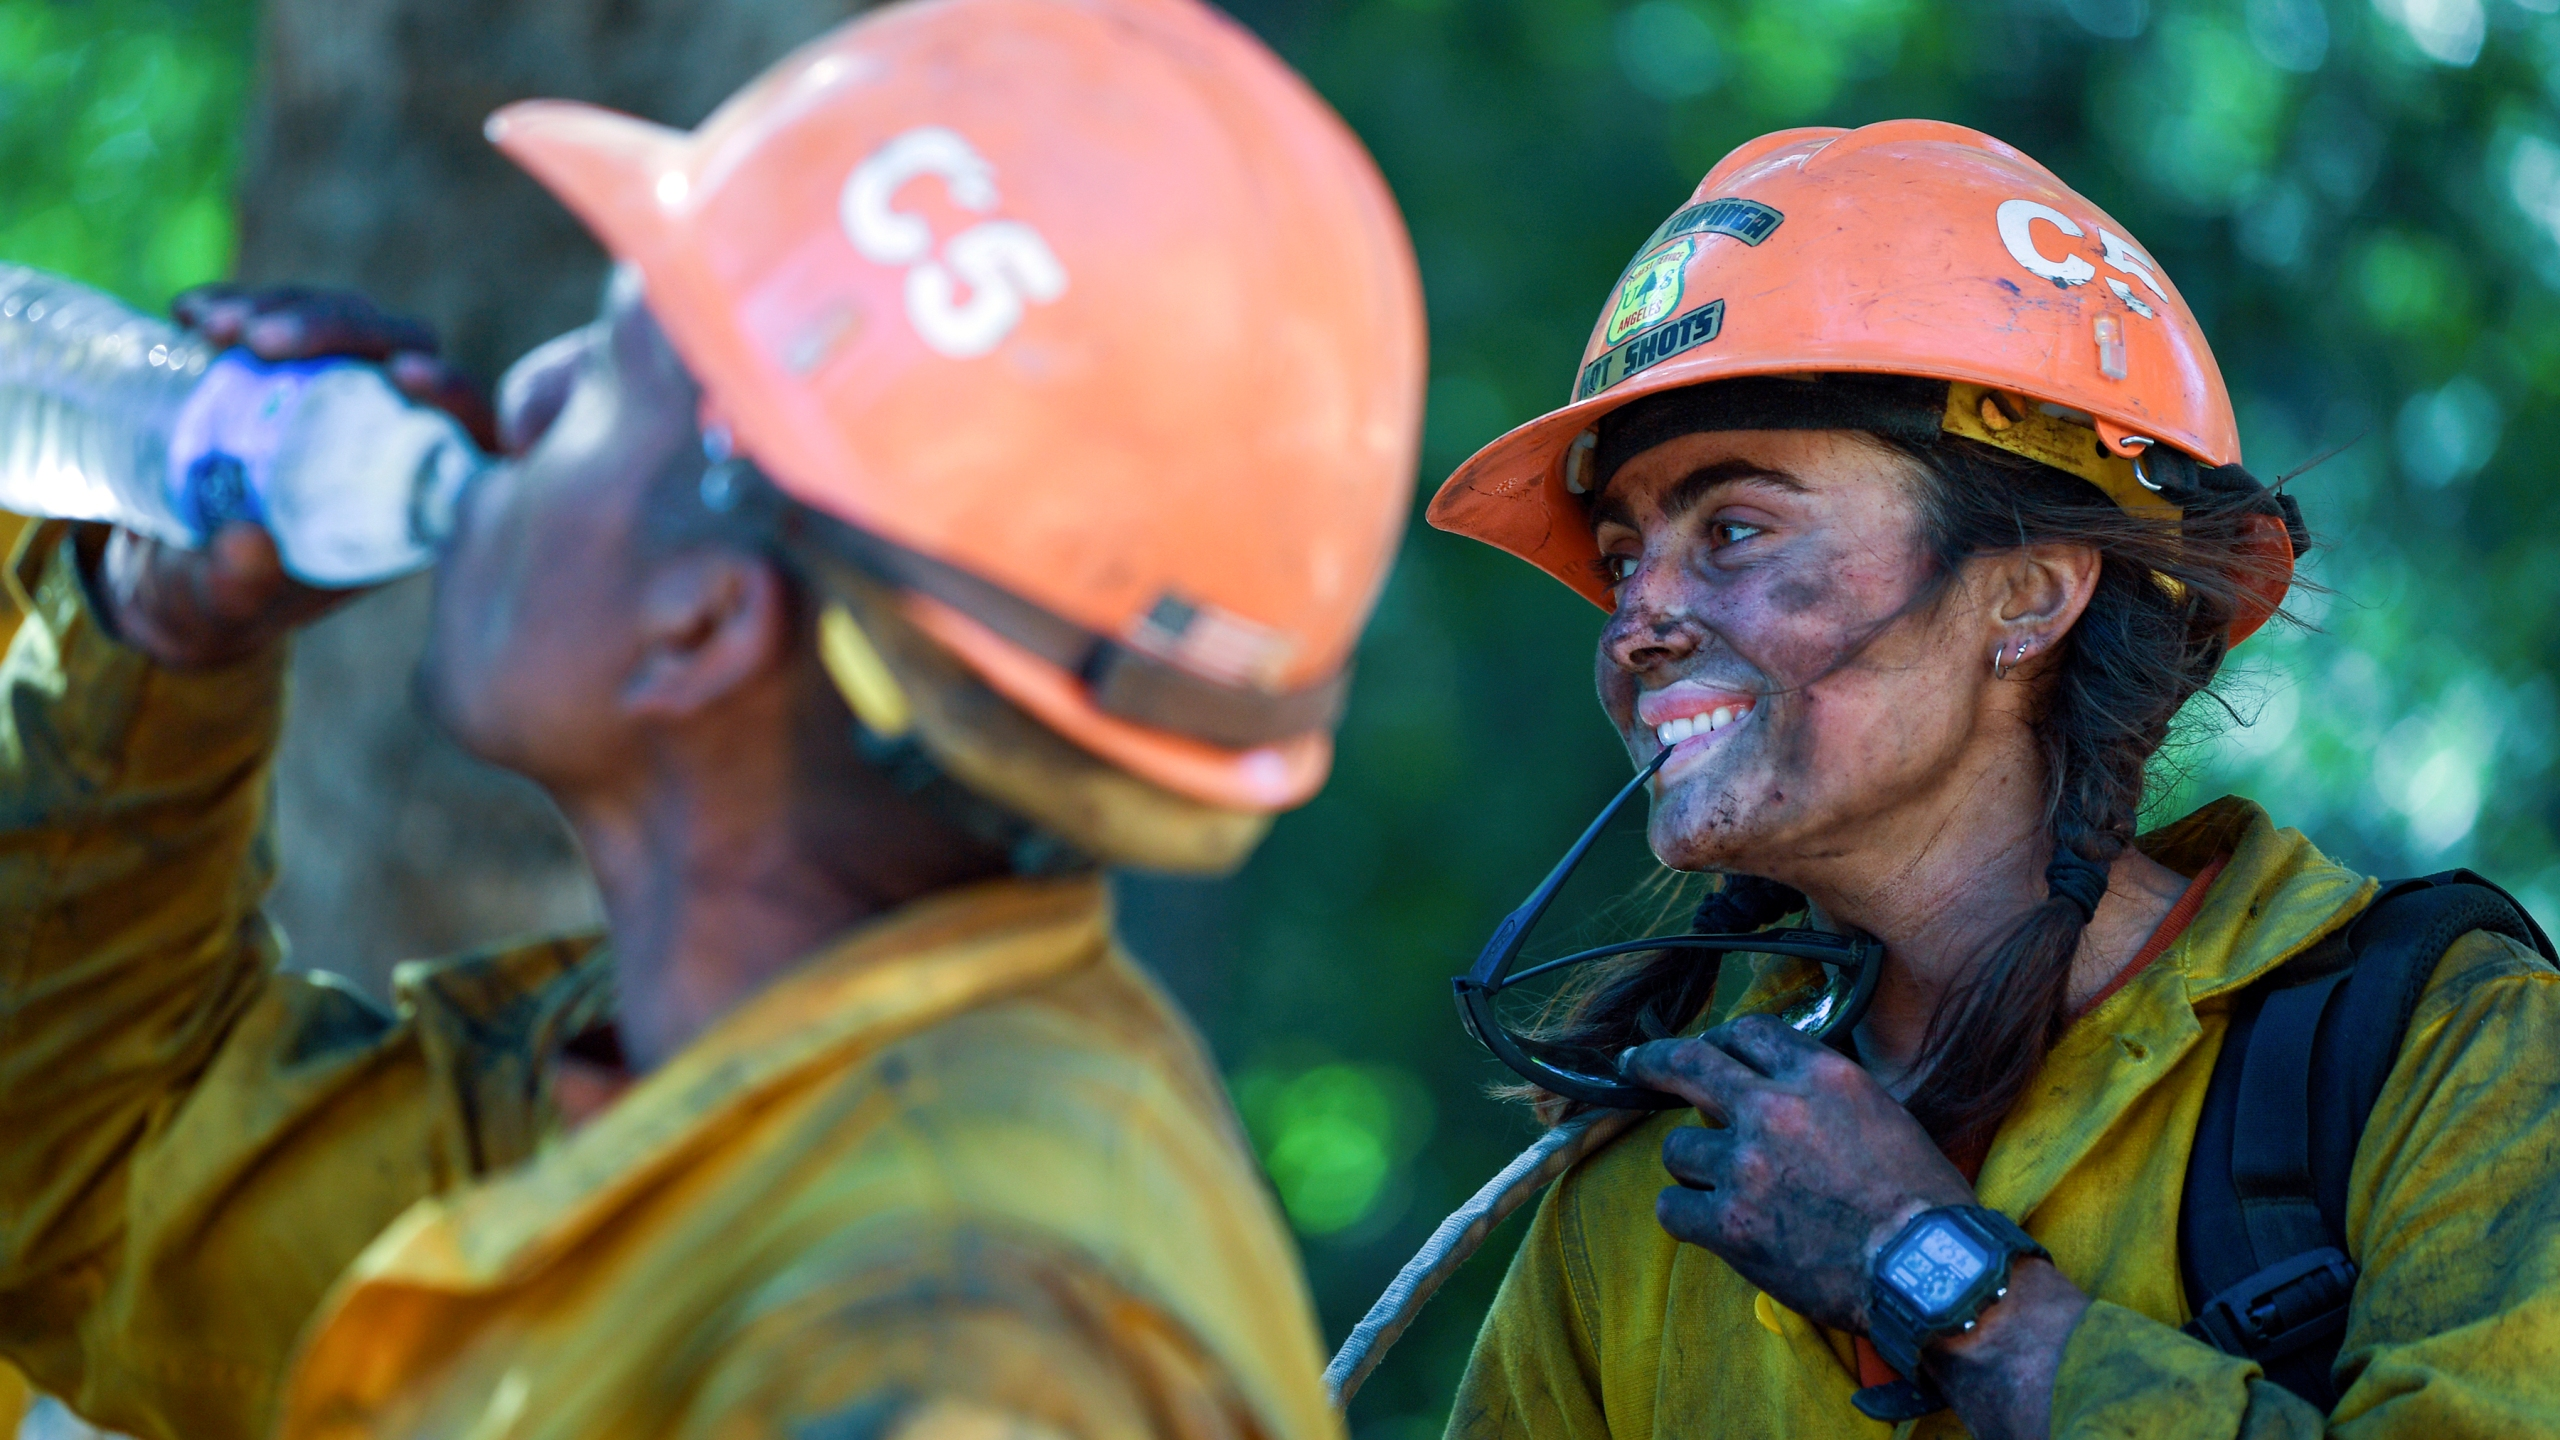 Members of the Little Tujunga Hot Shots take a break after fighting the Willow Fire near the Tassajara Zen Mountain Center in Carmel Valley, Calif., Wednesday, June 23, 2021. (AP Photo/Nic Coury)